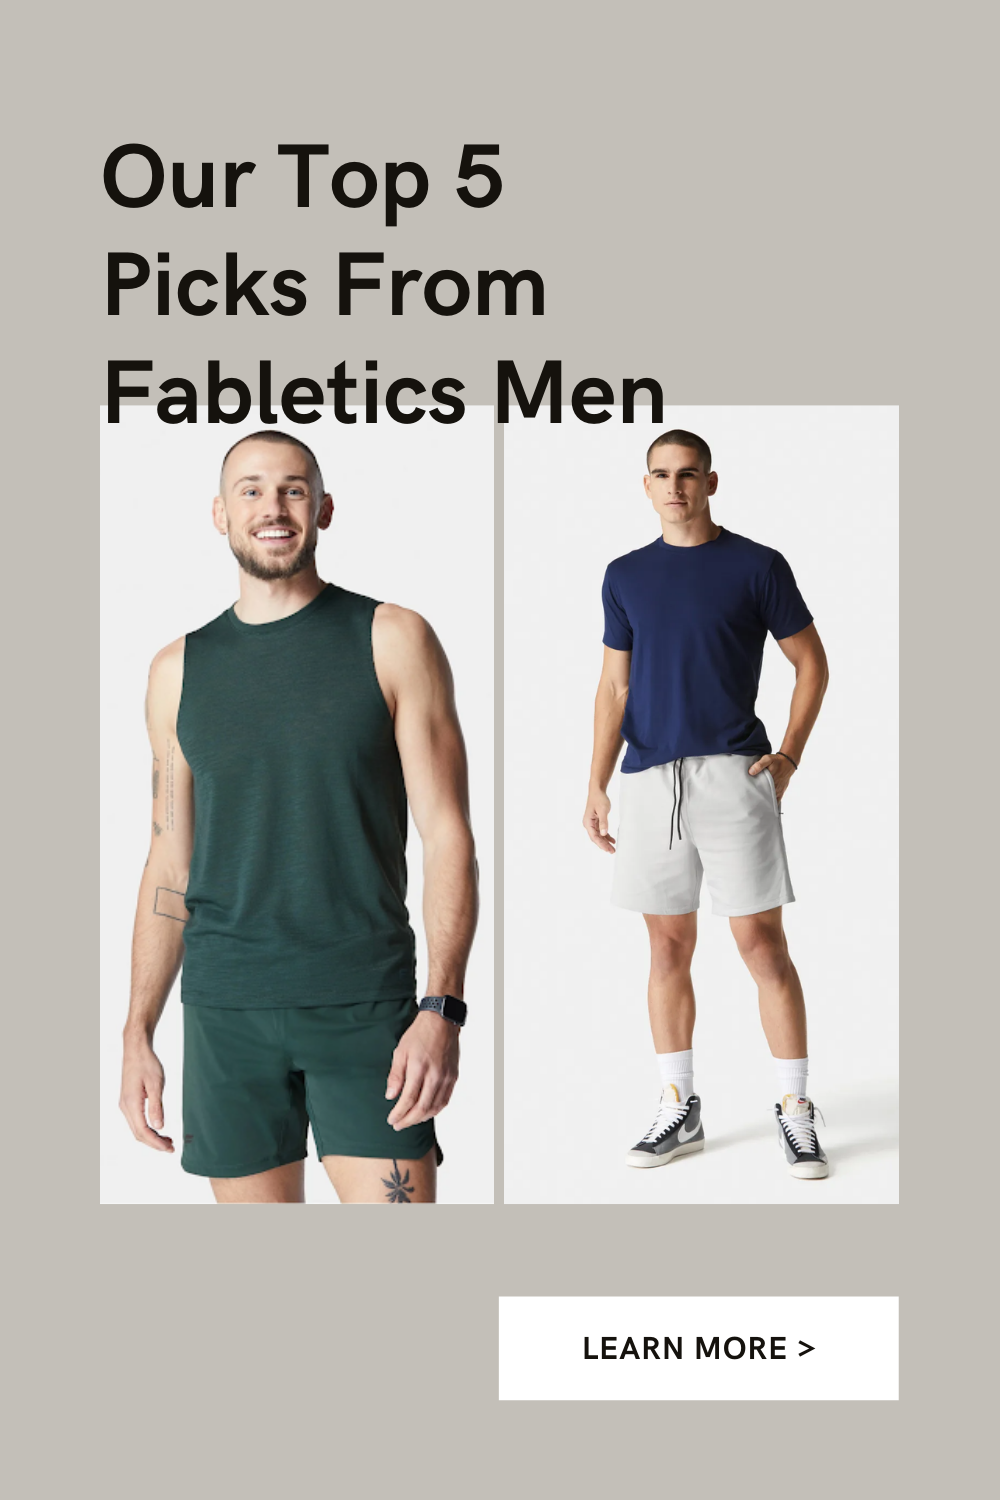 Our Top 5 Picks From Fabletics Men